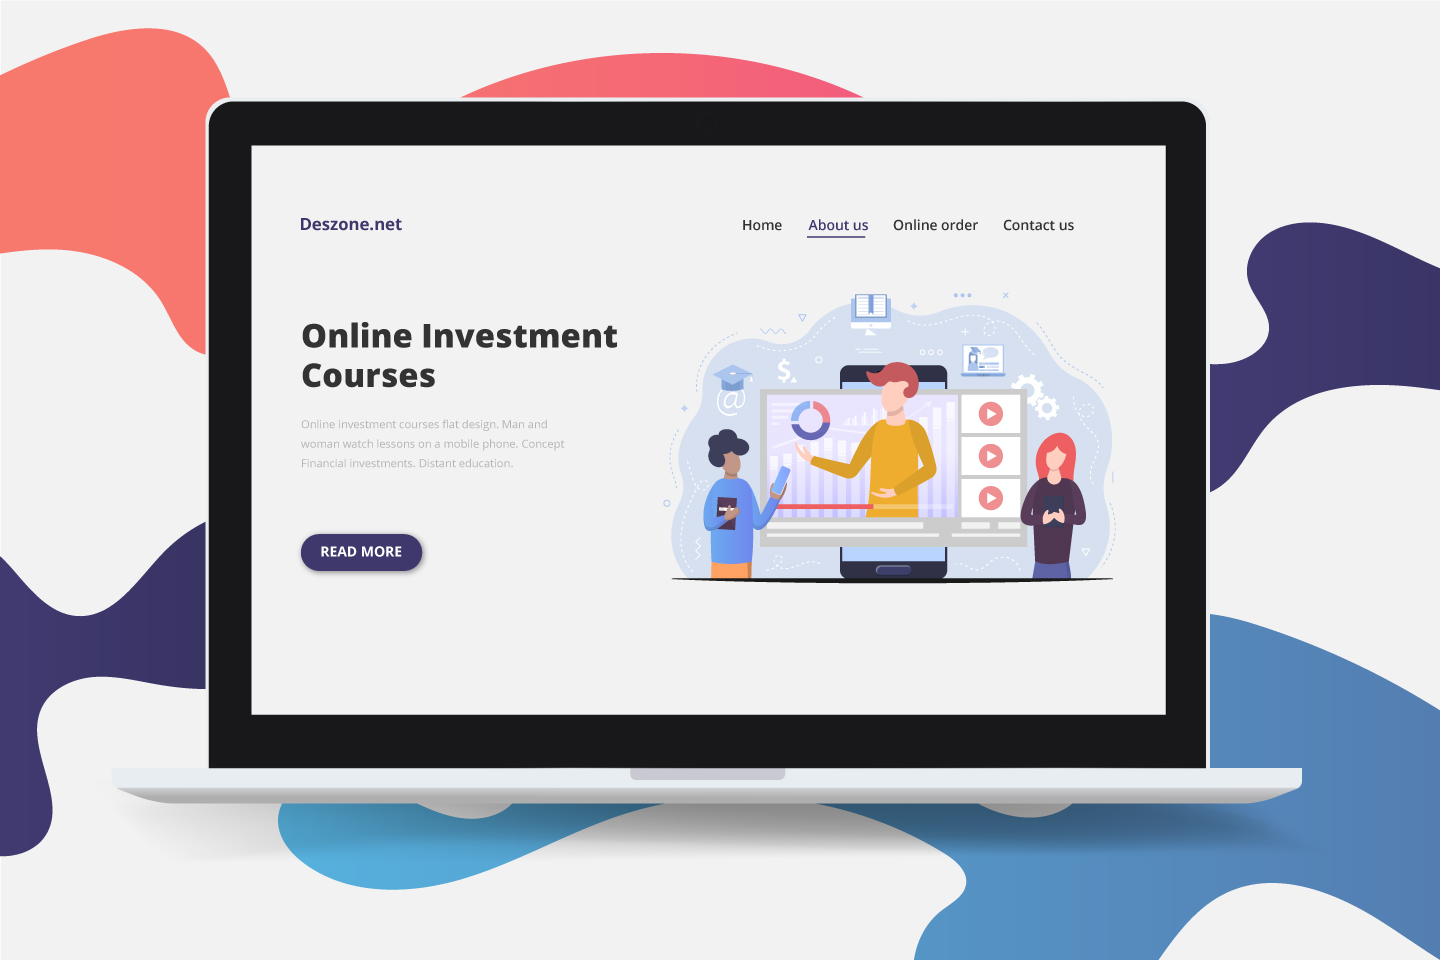 Online Investment Courses Flat Design